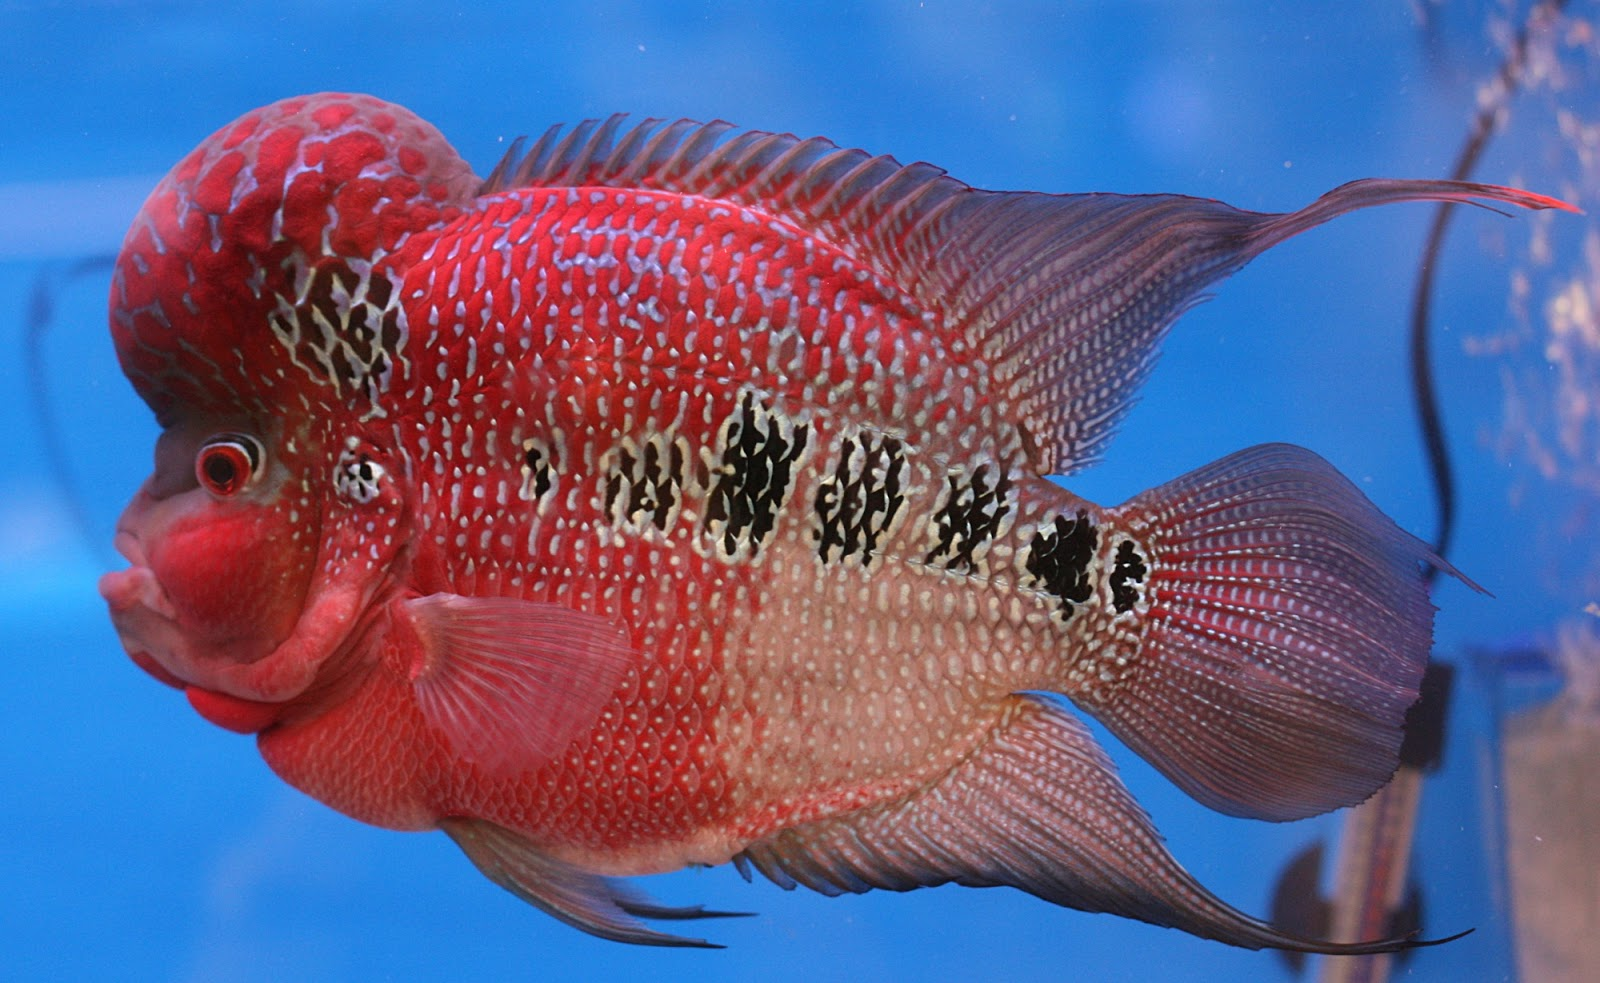 Flower Horn Is Also Most Por In Fish Keeping Hobby It Said To Be Feng Shui Because Of Bringing Fortune Luck The Owner